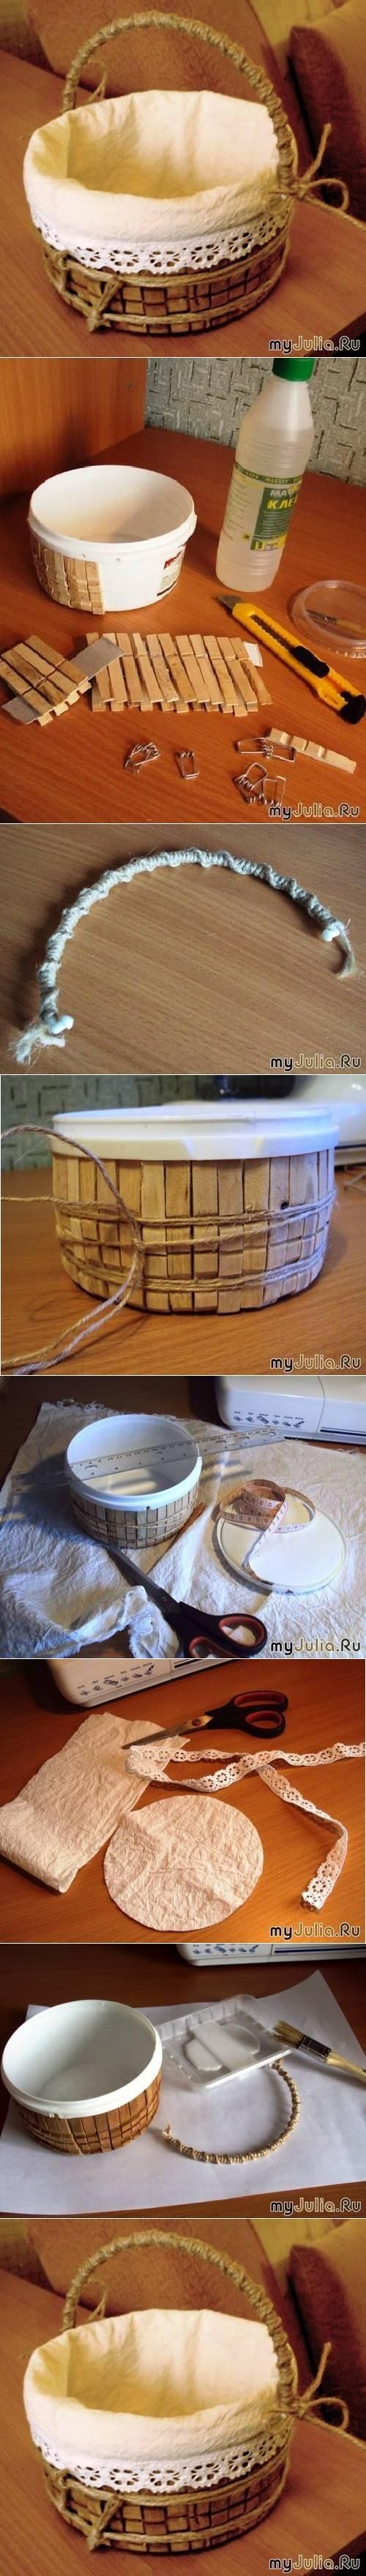 DIY Needlework Basket DIY Needlework Basket